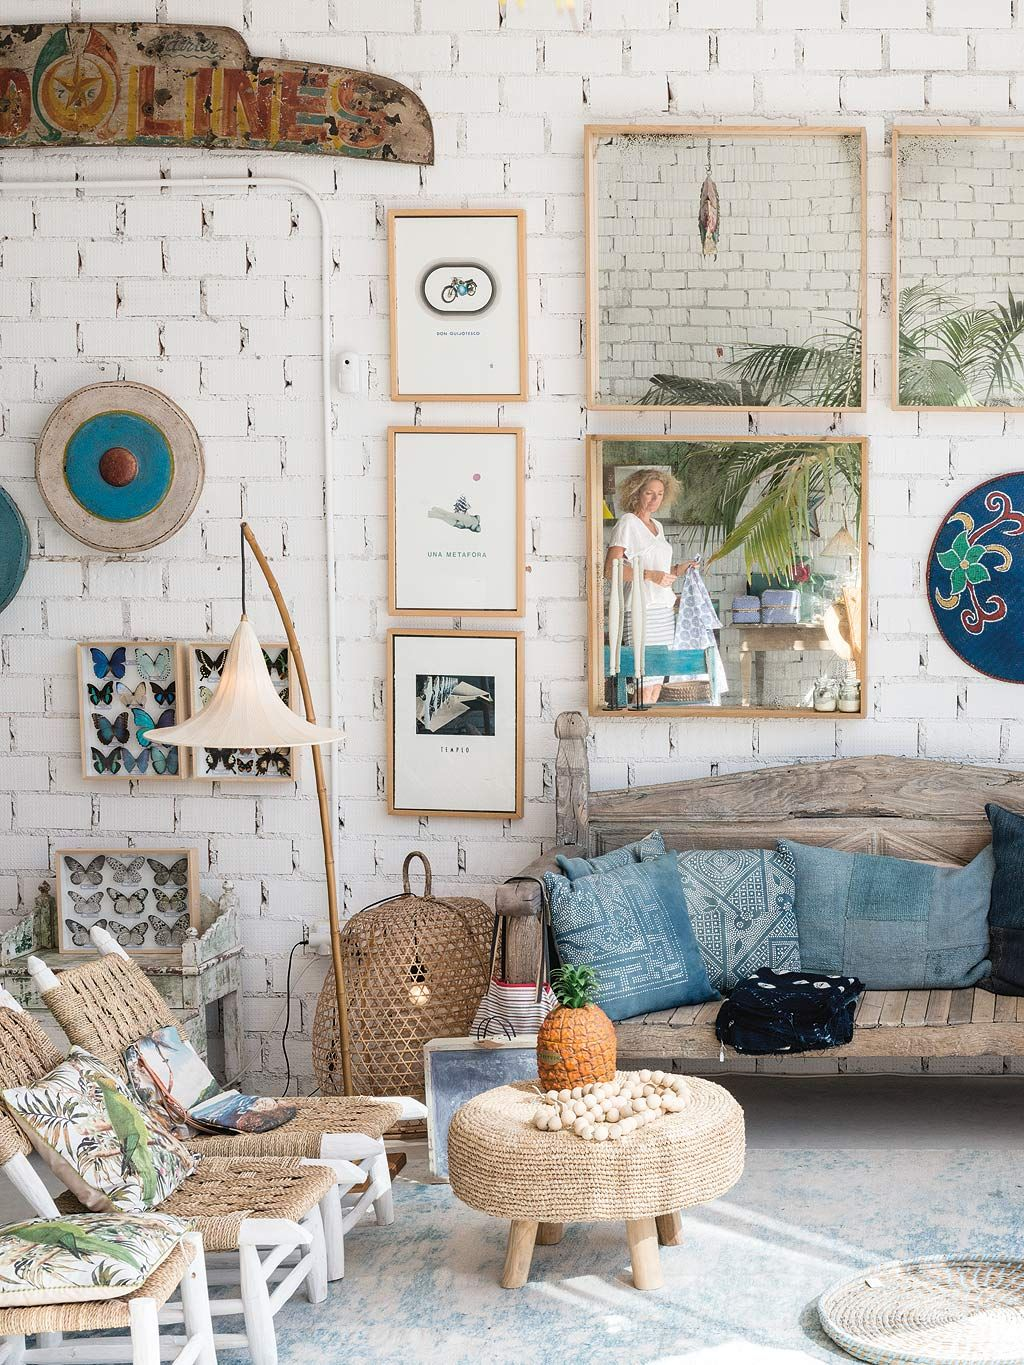 COCOON bohemian chic house inspiration bycocooncom